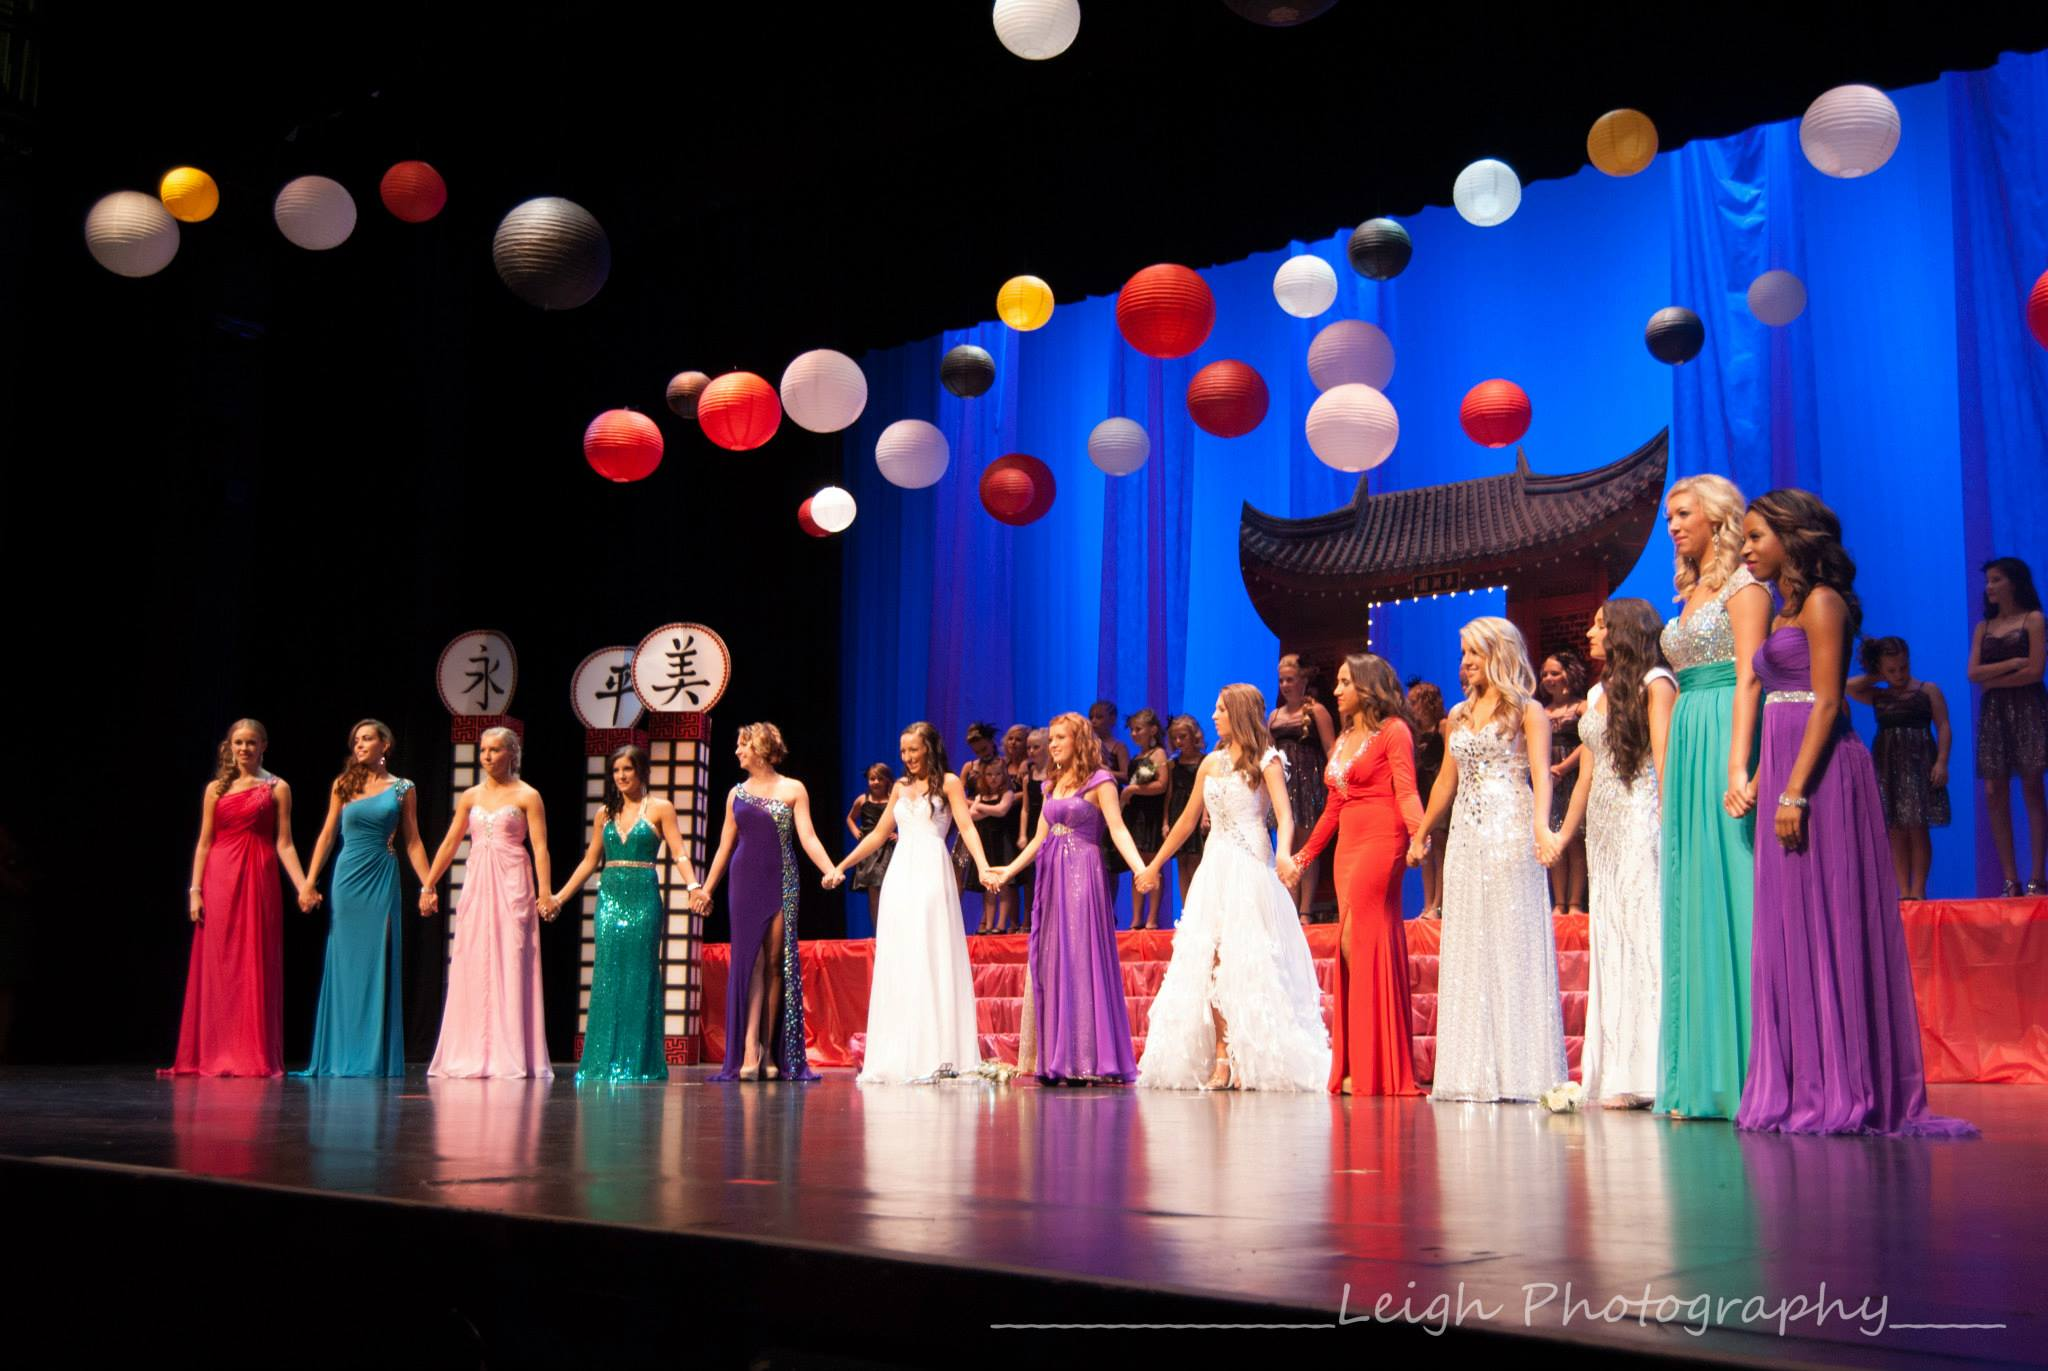 Optometrists in Idaho Falls and Pocatello sponsor Miss Idaho Falls pagent.